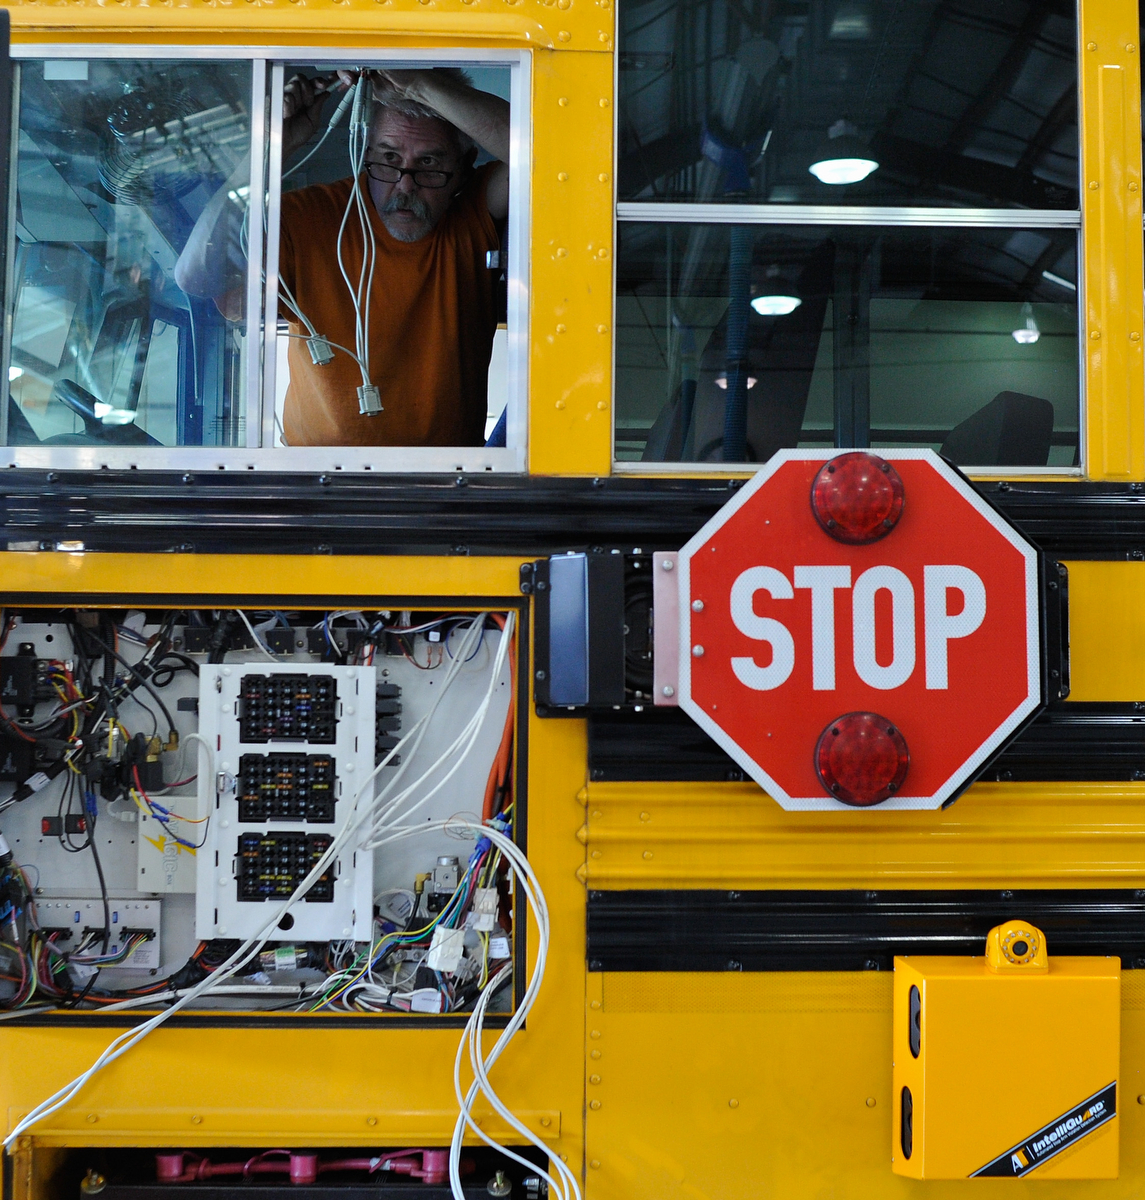 Ernie Stedman works on wiring a stop arm camera onto a Clarke County School Bus in Athens, Ga., Tuesday, Jan. 21, 2014. When the stop arm is activated, the camera photographs any automobile passing the school bus, resulting in a $300 traffic ticket. (AJ Reynolds/The Athens Banner-Herald)